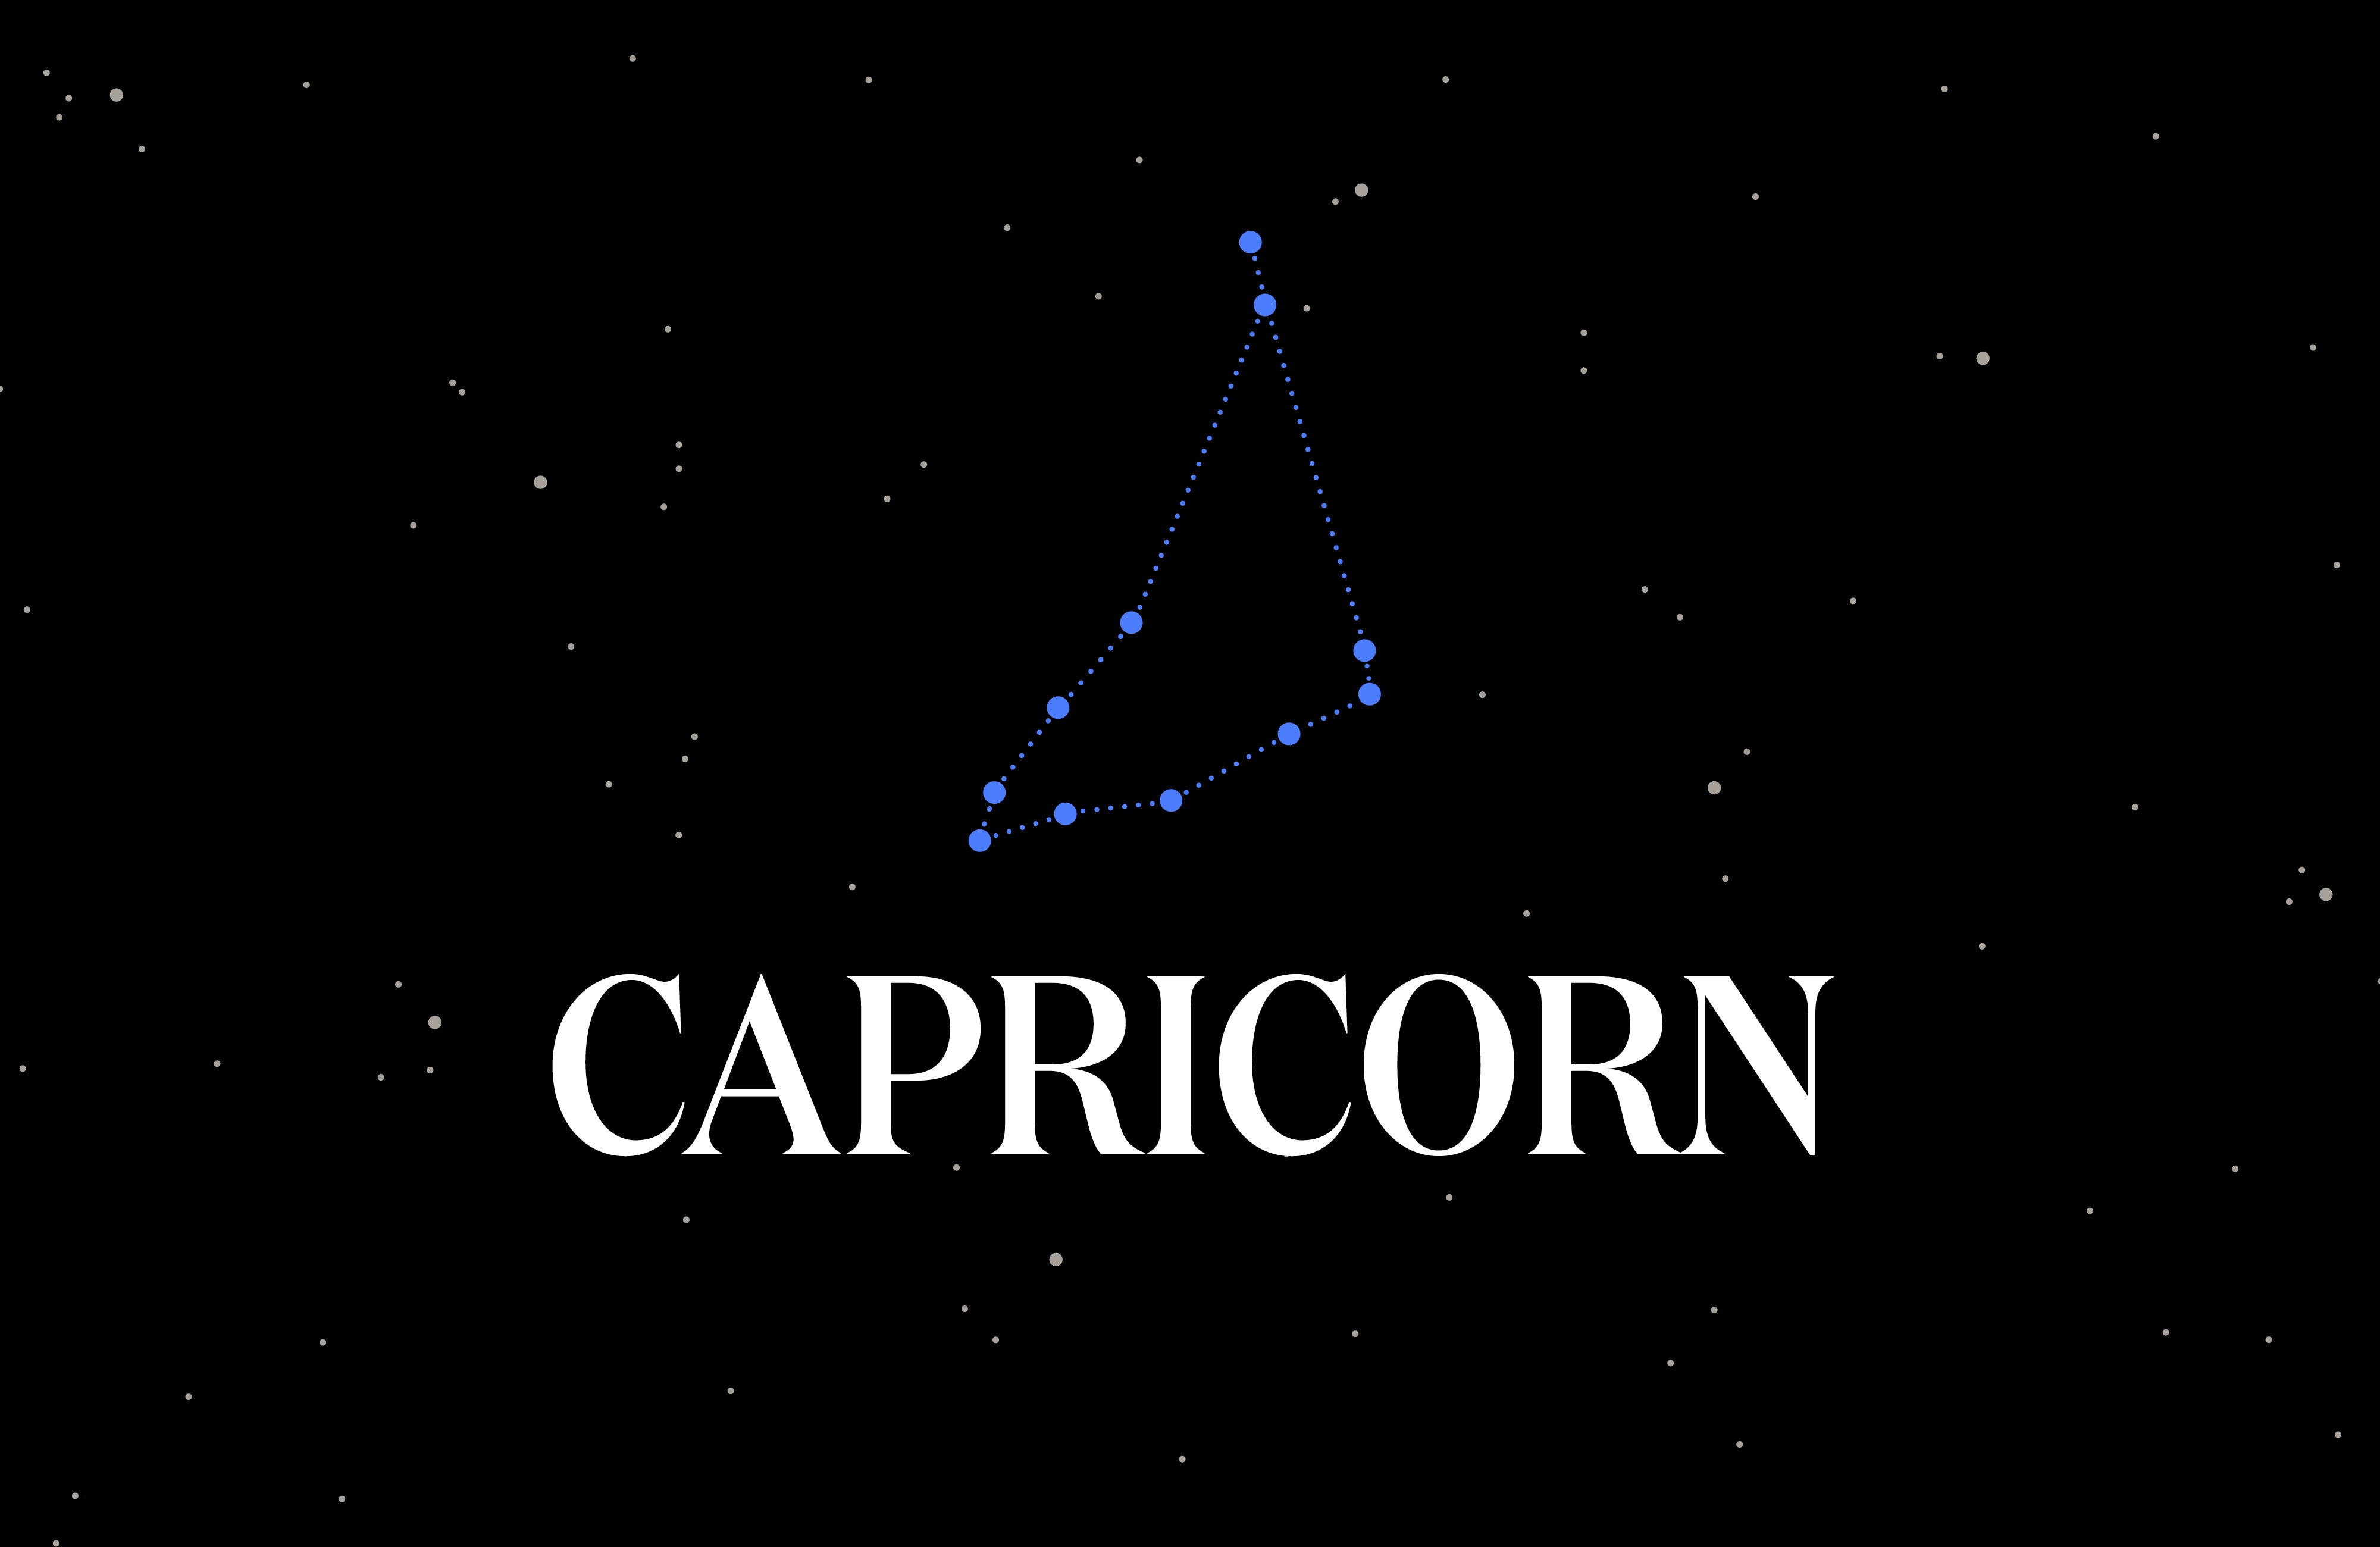 Graphic of the Capricorn constellation.